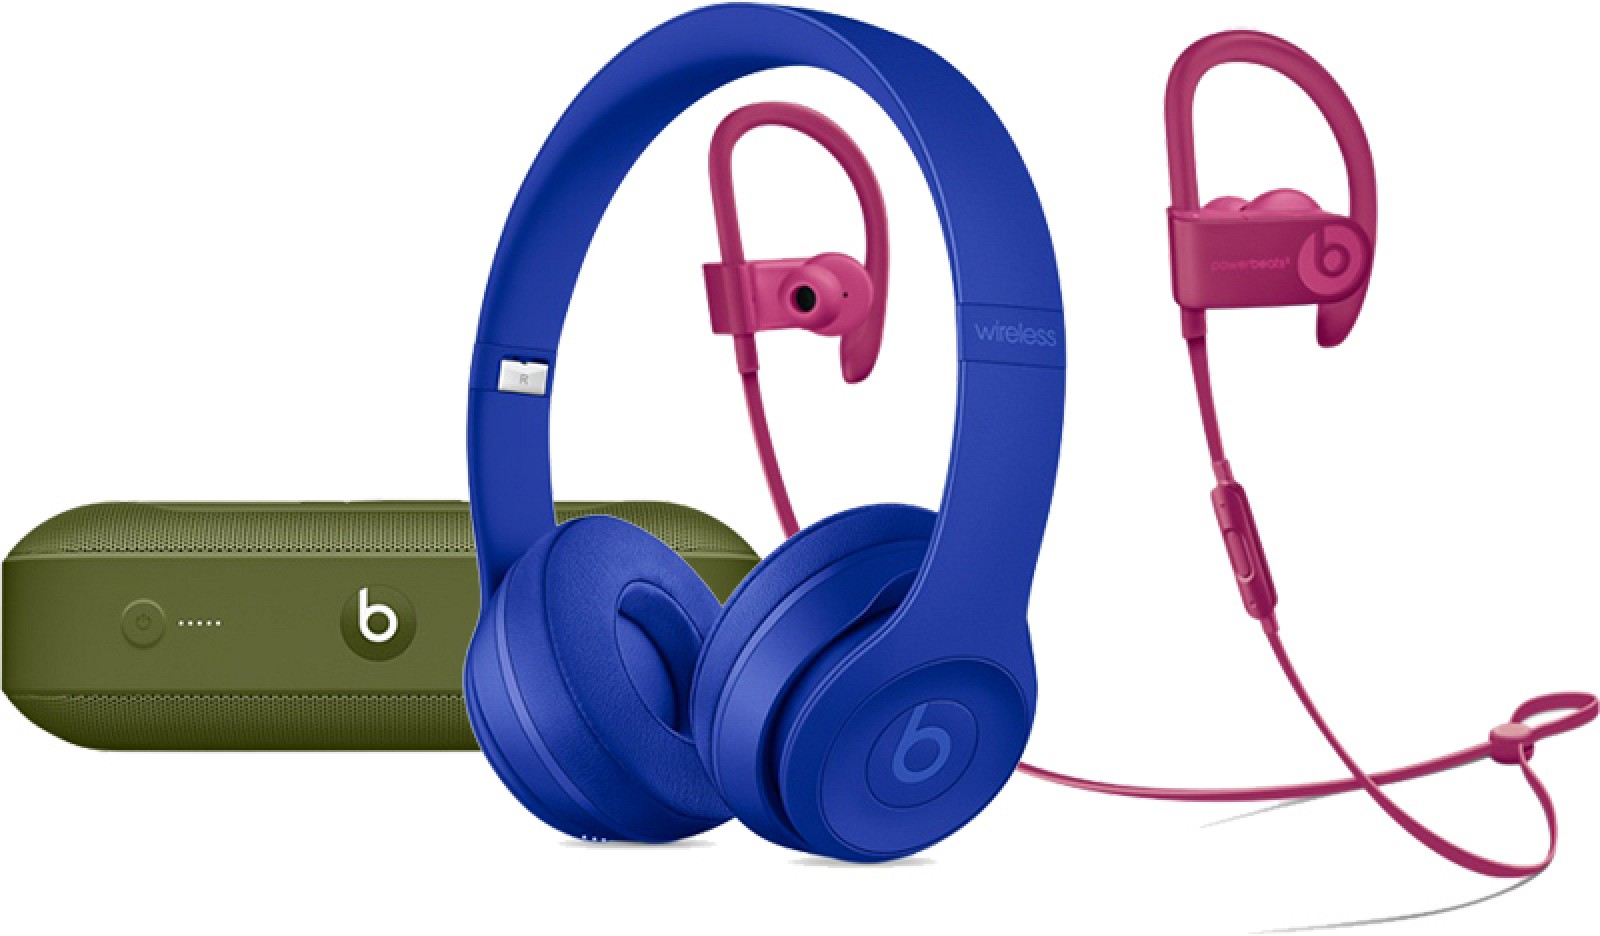 cc3b678b1b0 Apple Now Selling Beats Solo3, Powerbeats3, and Pill+ Speaker in New 'Neighborhood  Collection' Colors - MacRumors